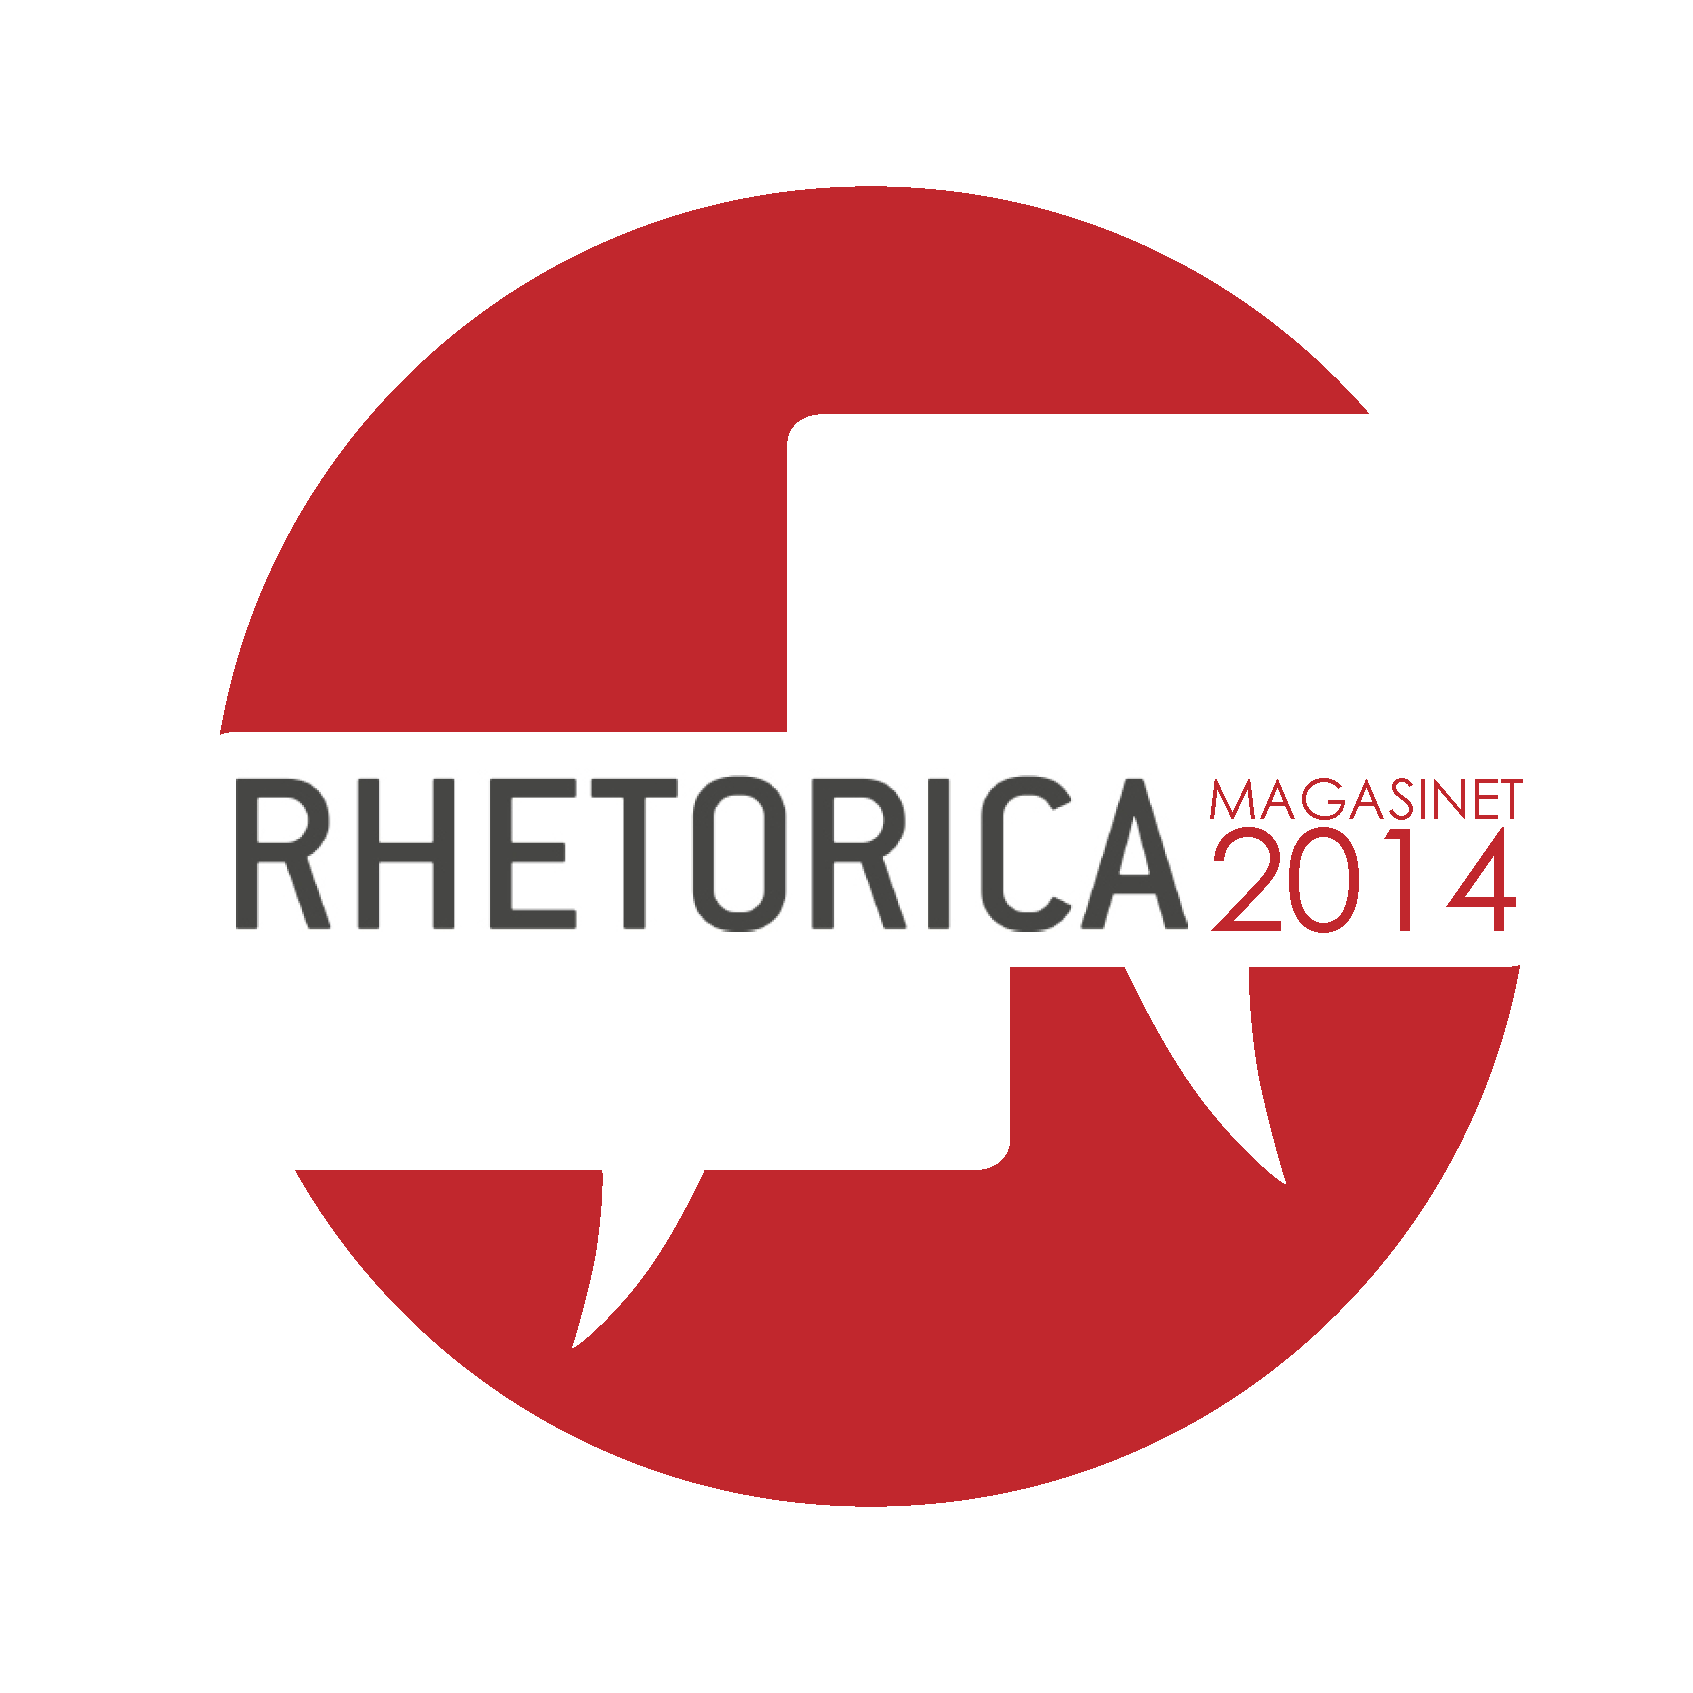 Rhetoricamagasinet 2014